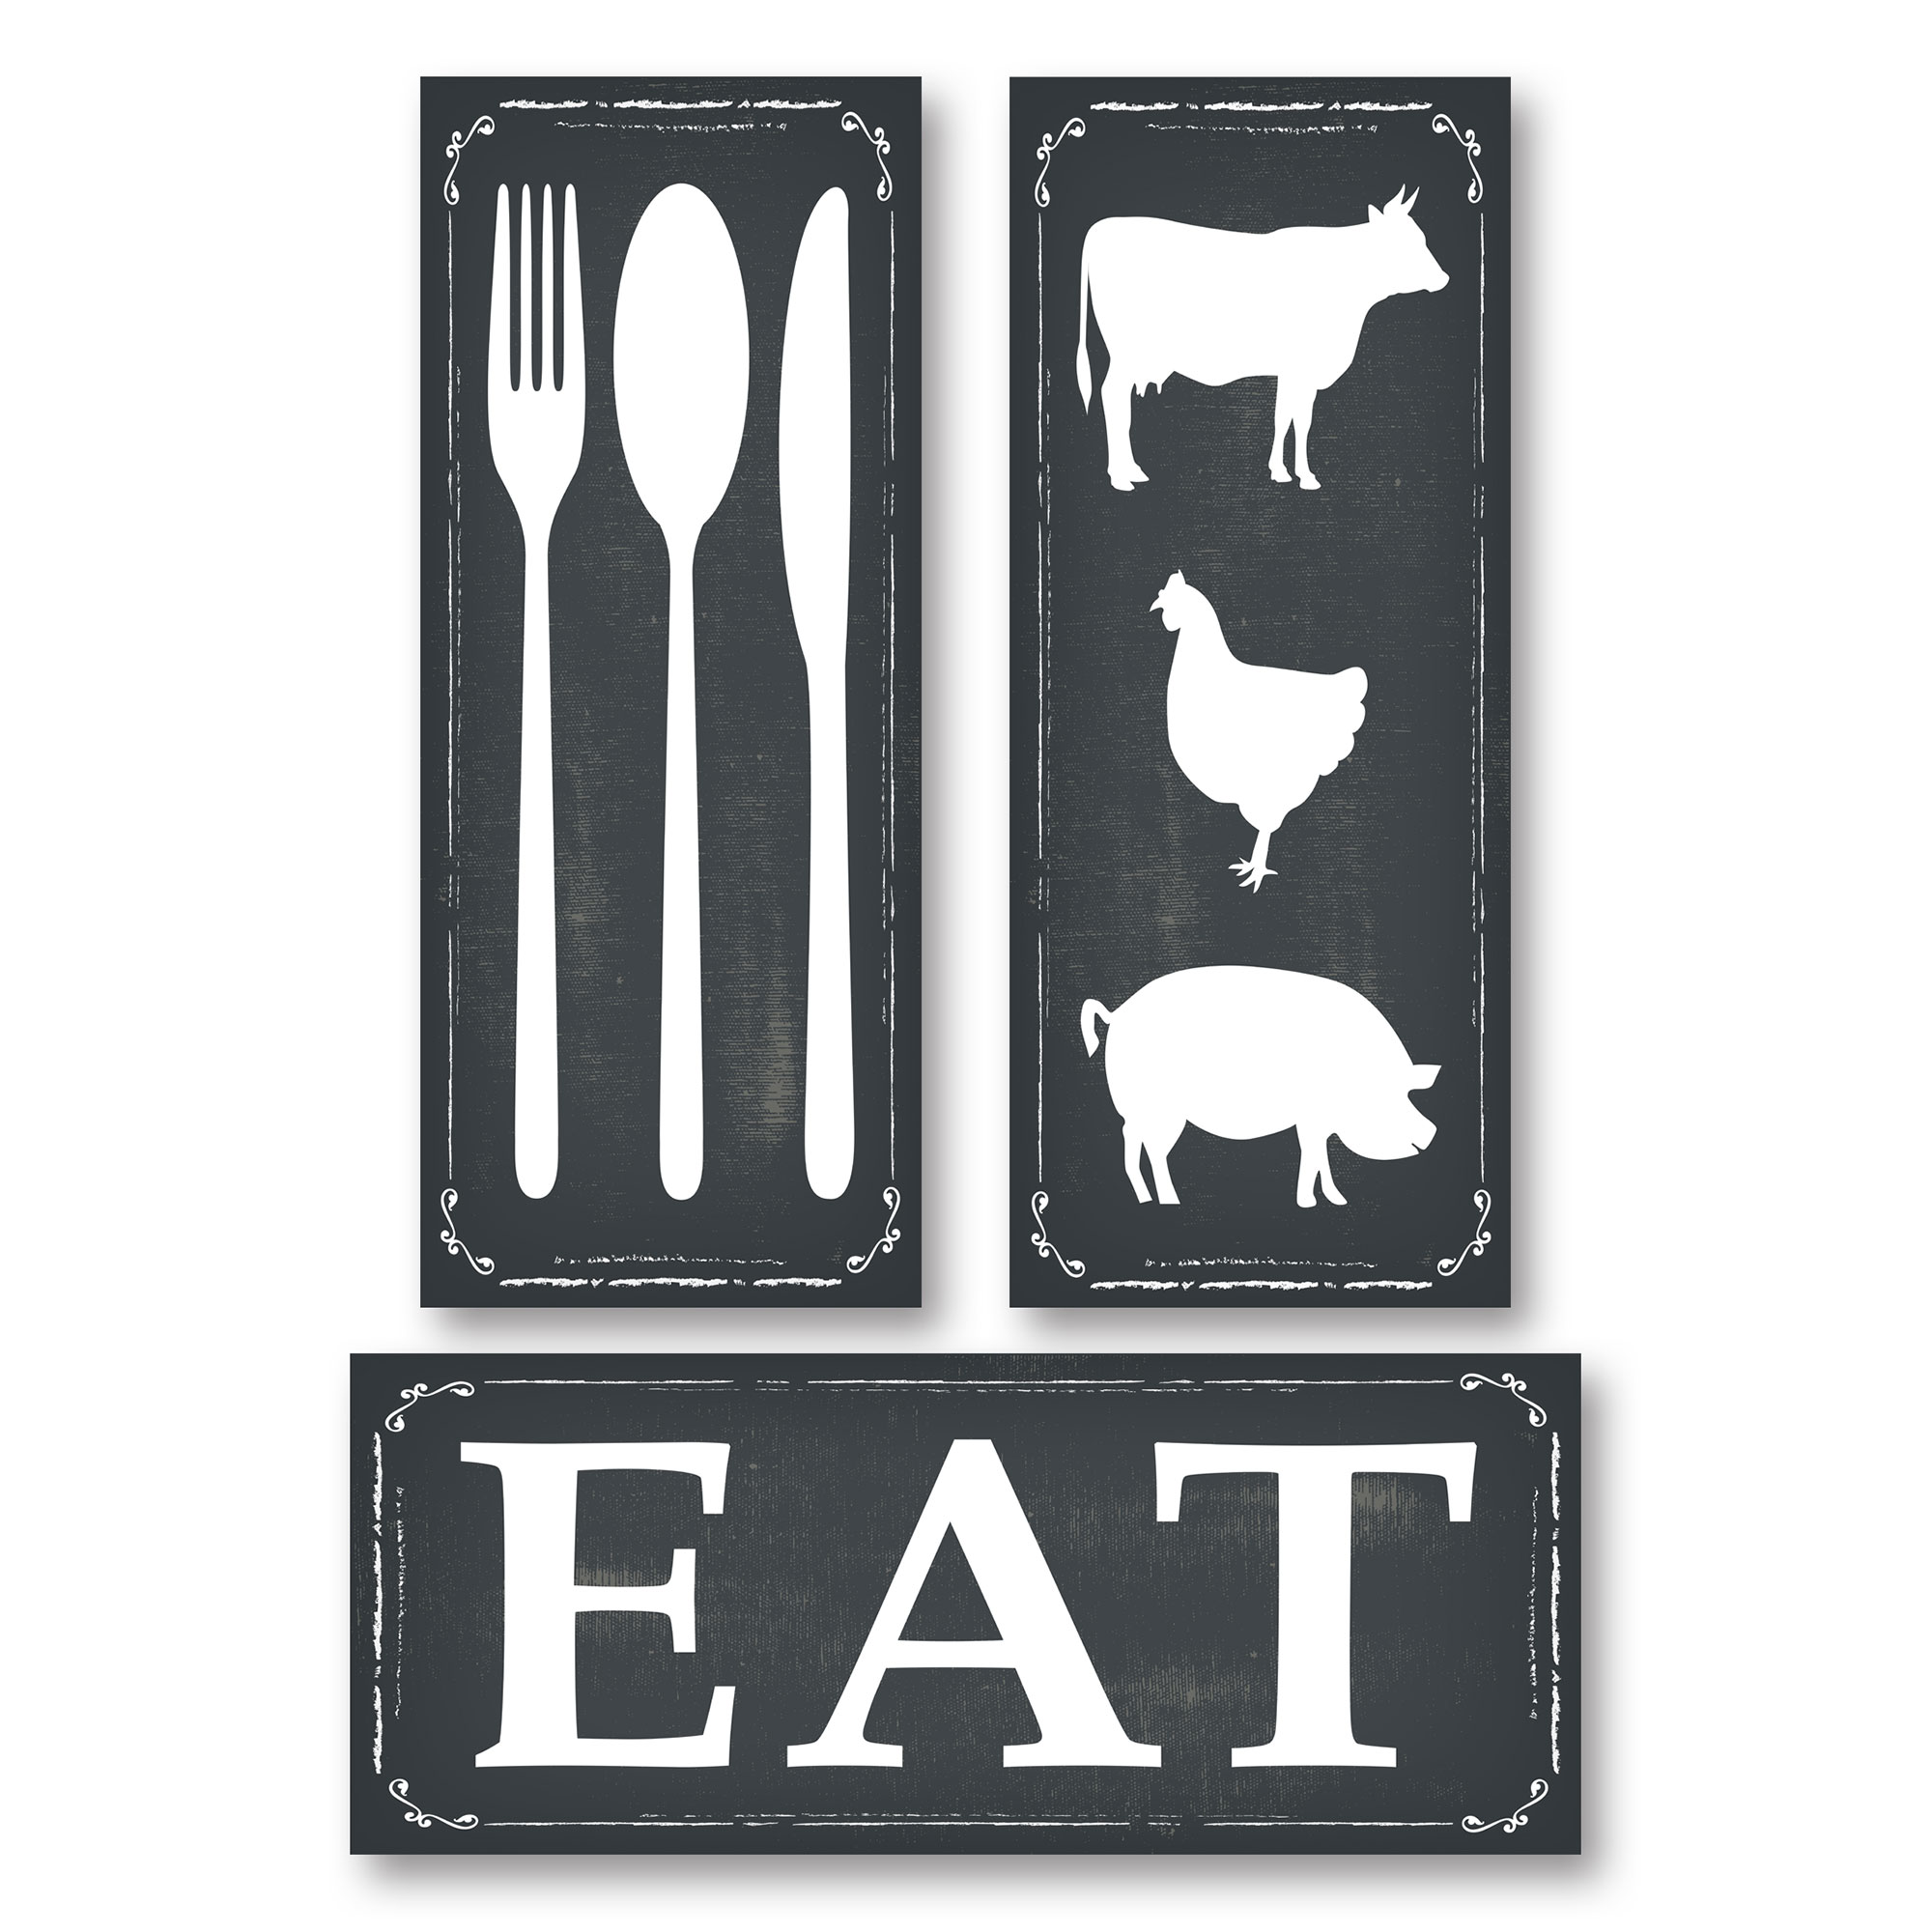 Chalkboard style knife fork spoon eat and farm animal panel prints printed